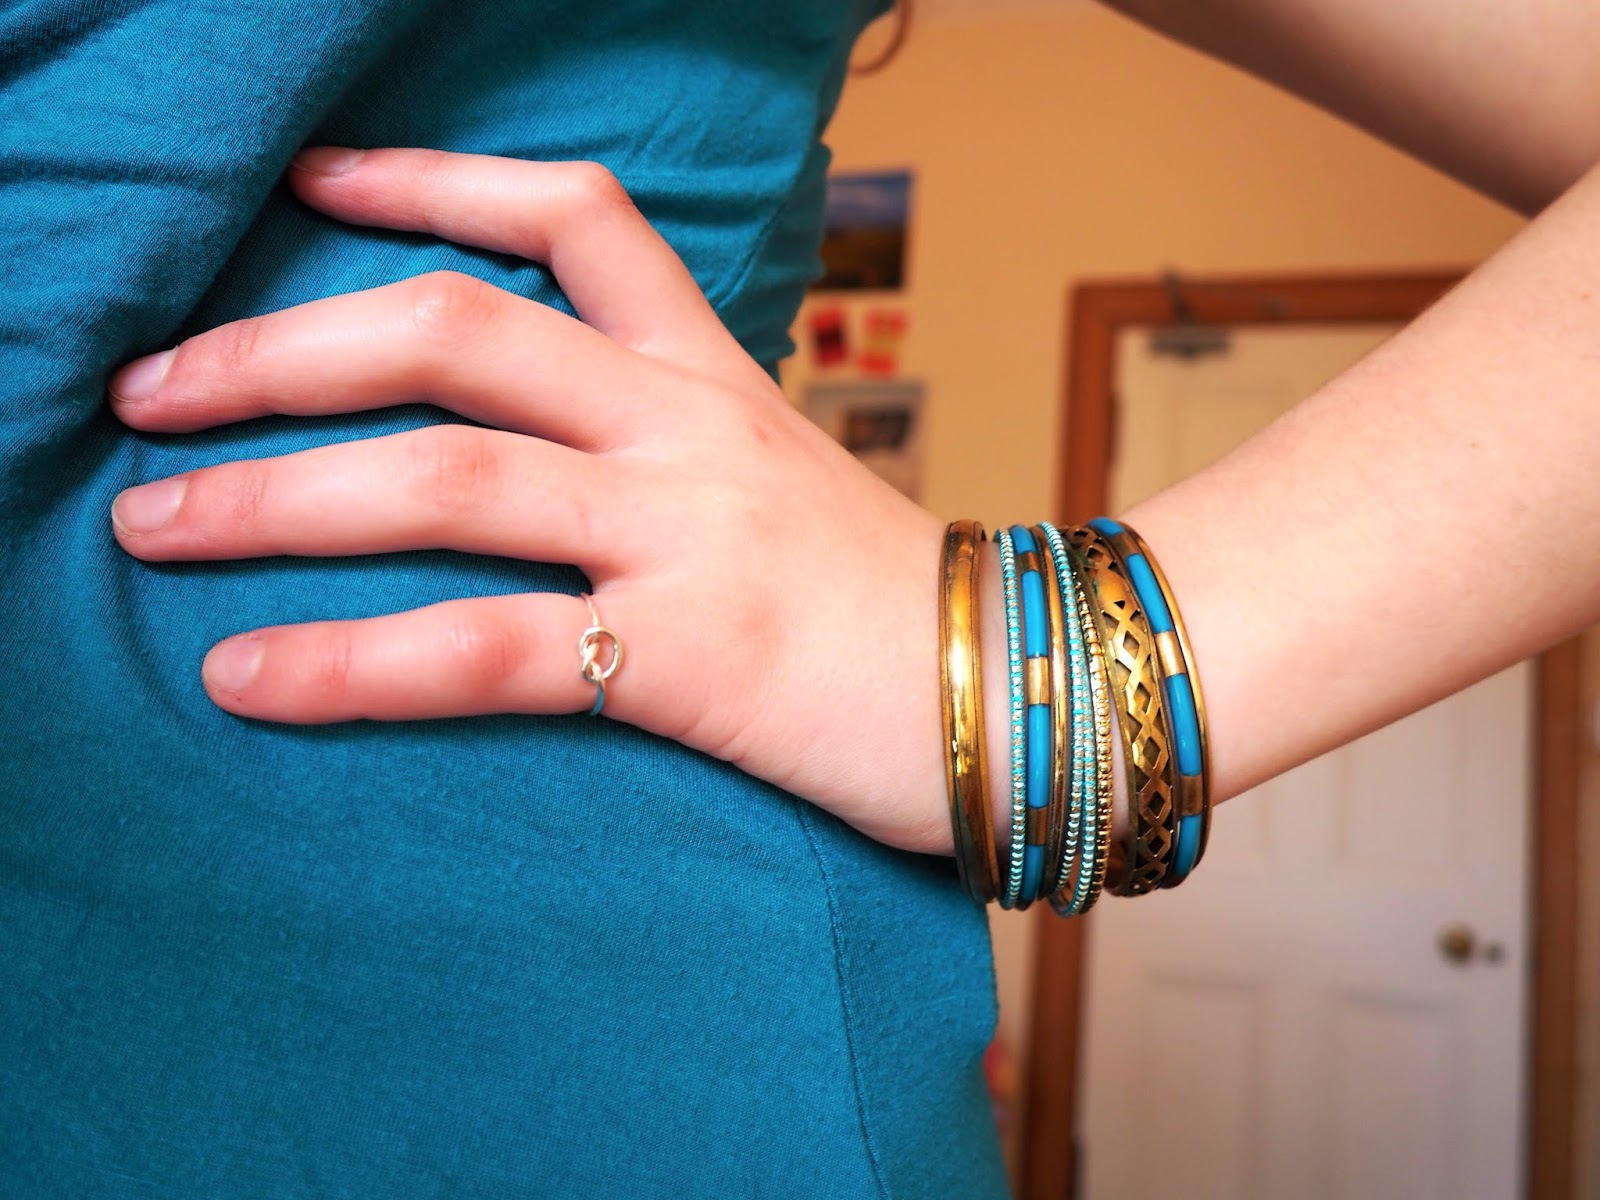 Blue Jeans outfit jewellery details - blue and gold bangles, silver knot ring